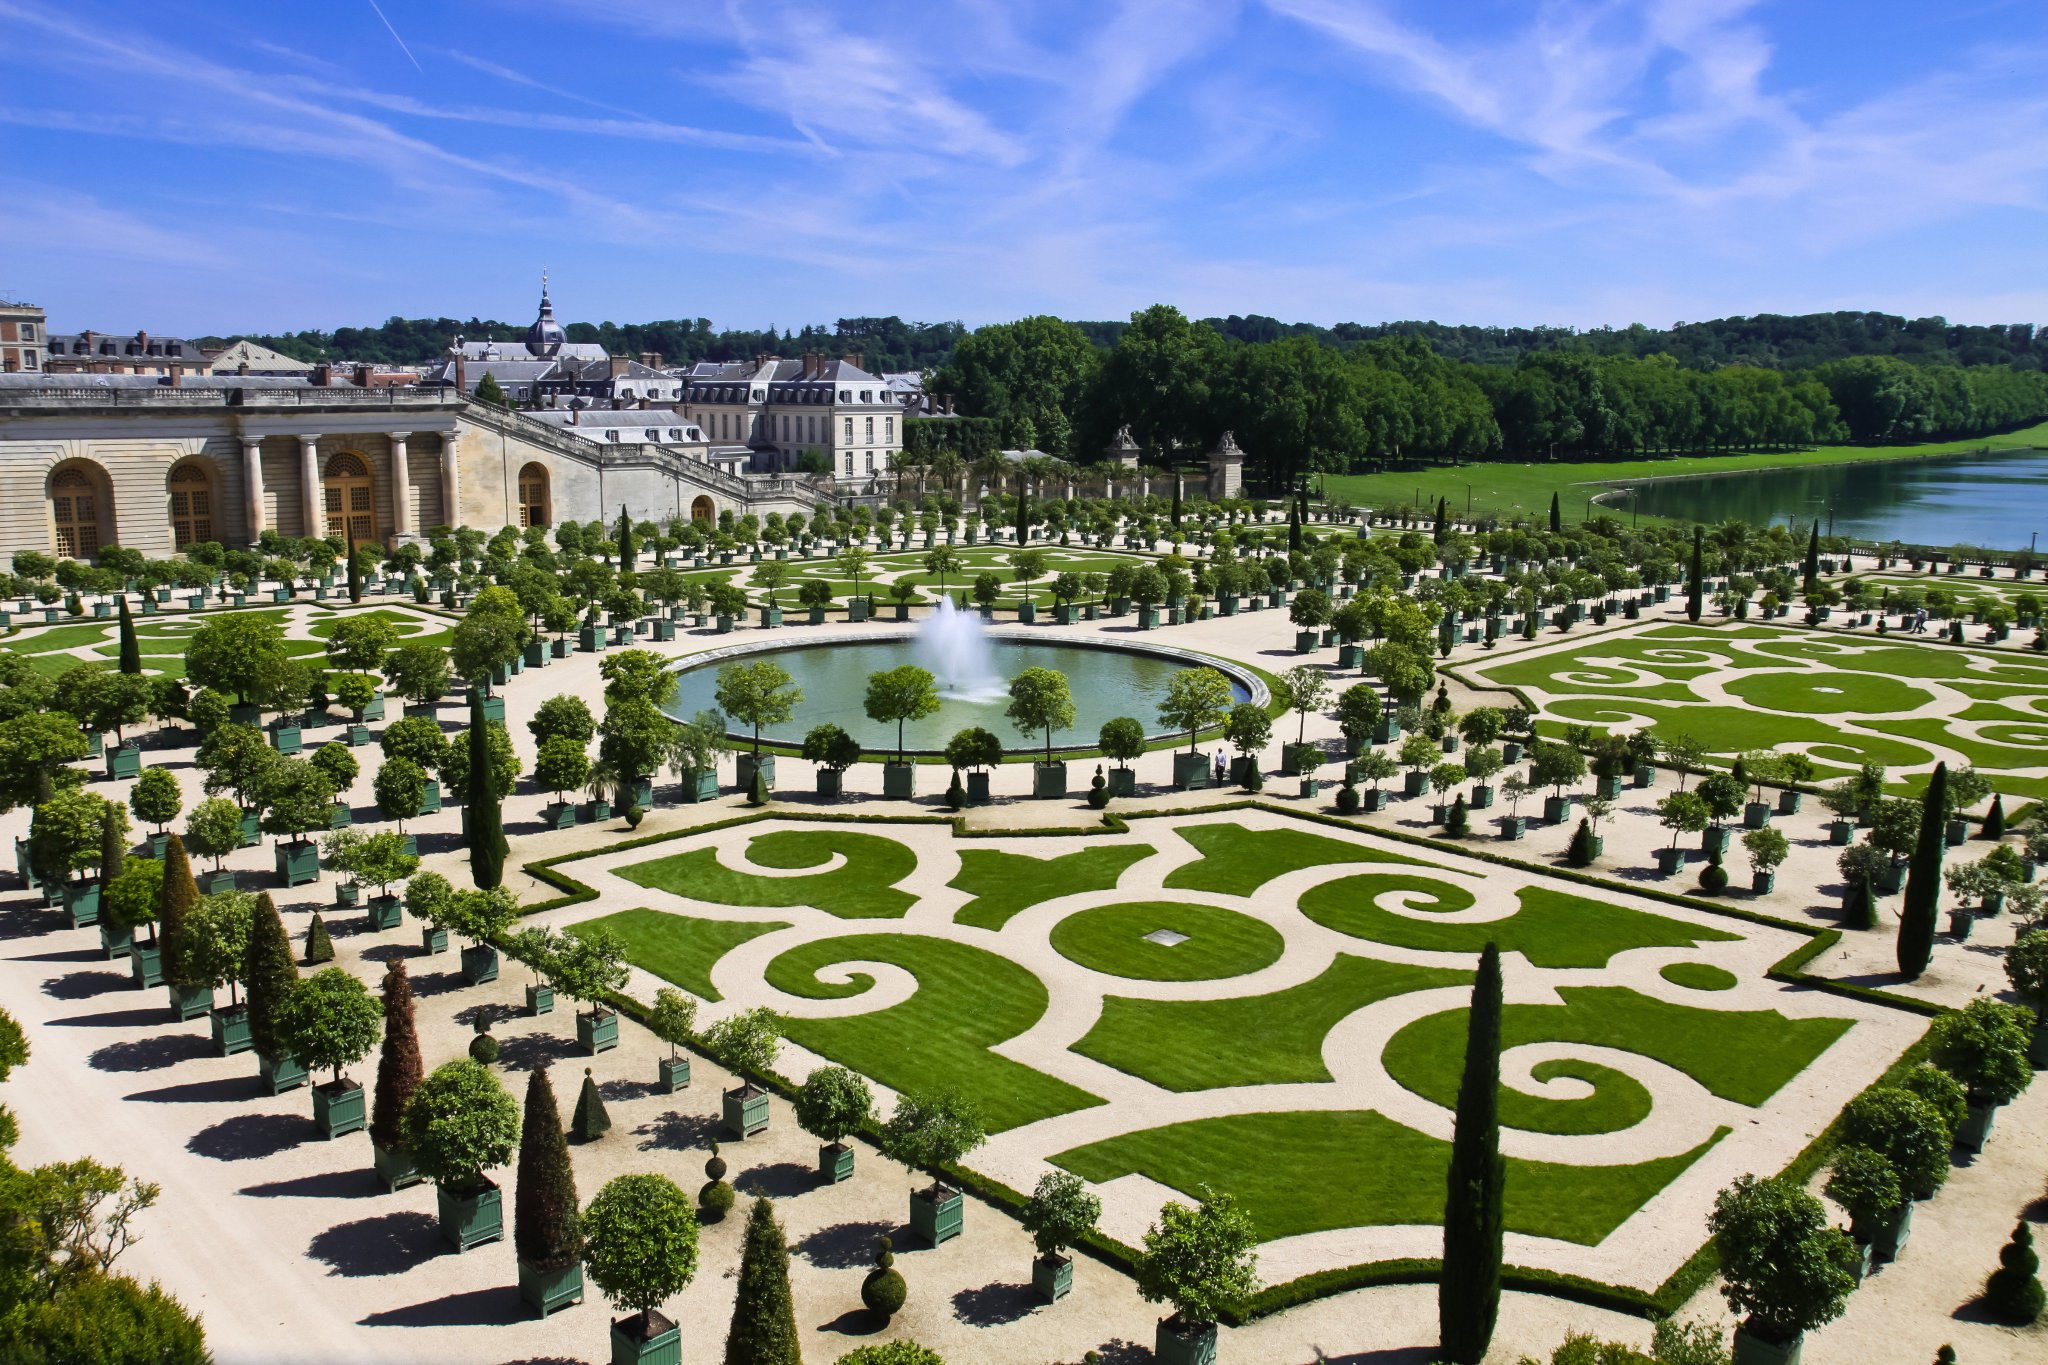 French embassy u s on twitter onthisday in 1613 andr le n tre was born he was the - Visite des jardins de versailles ...